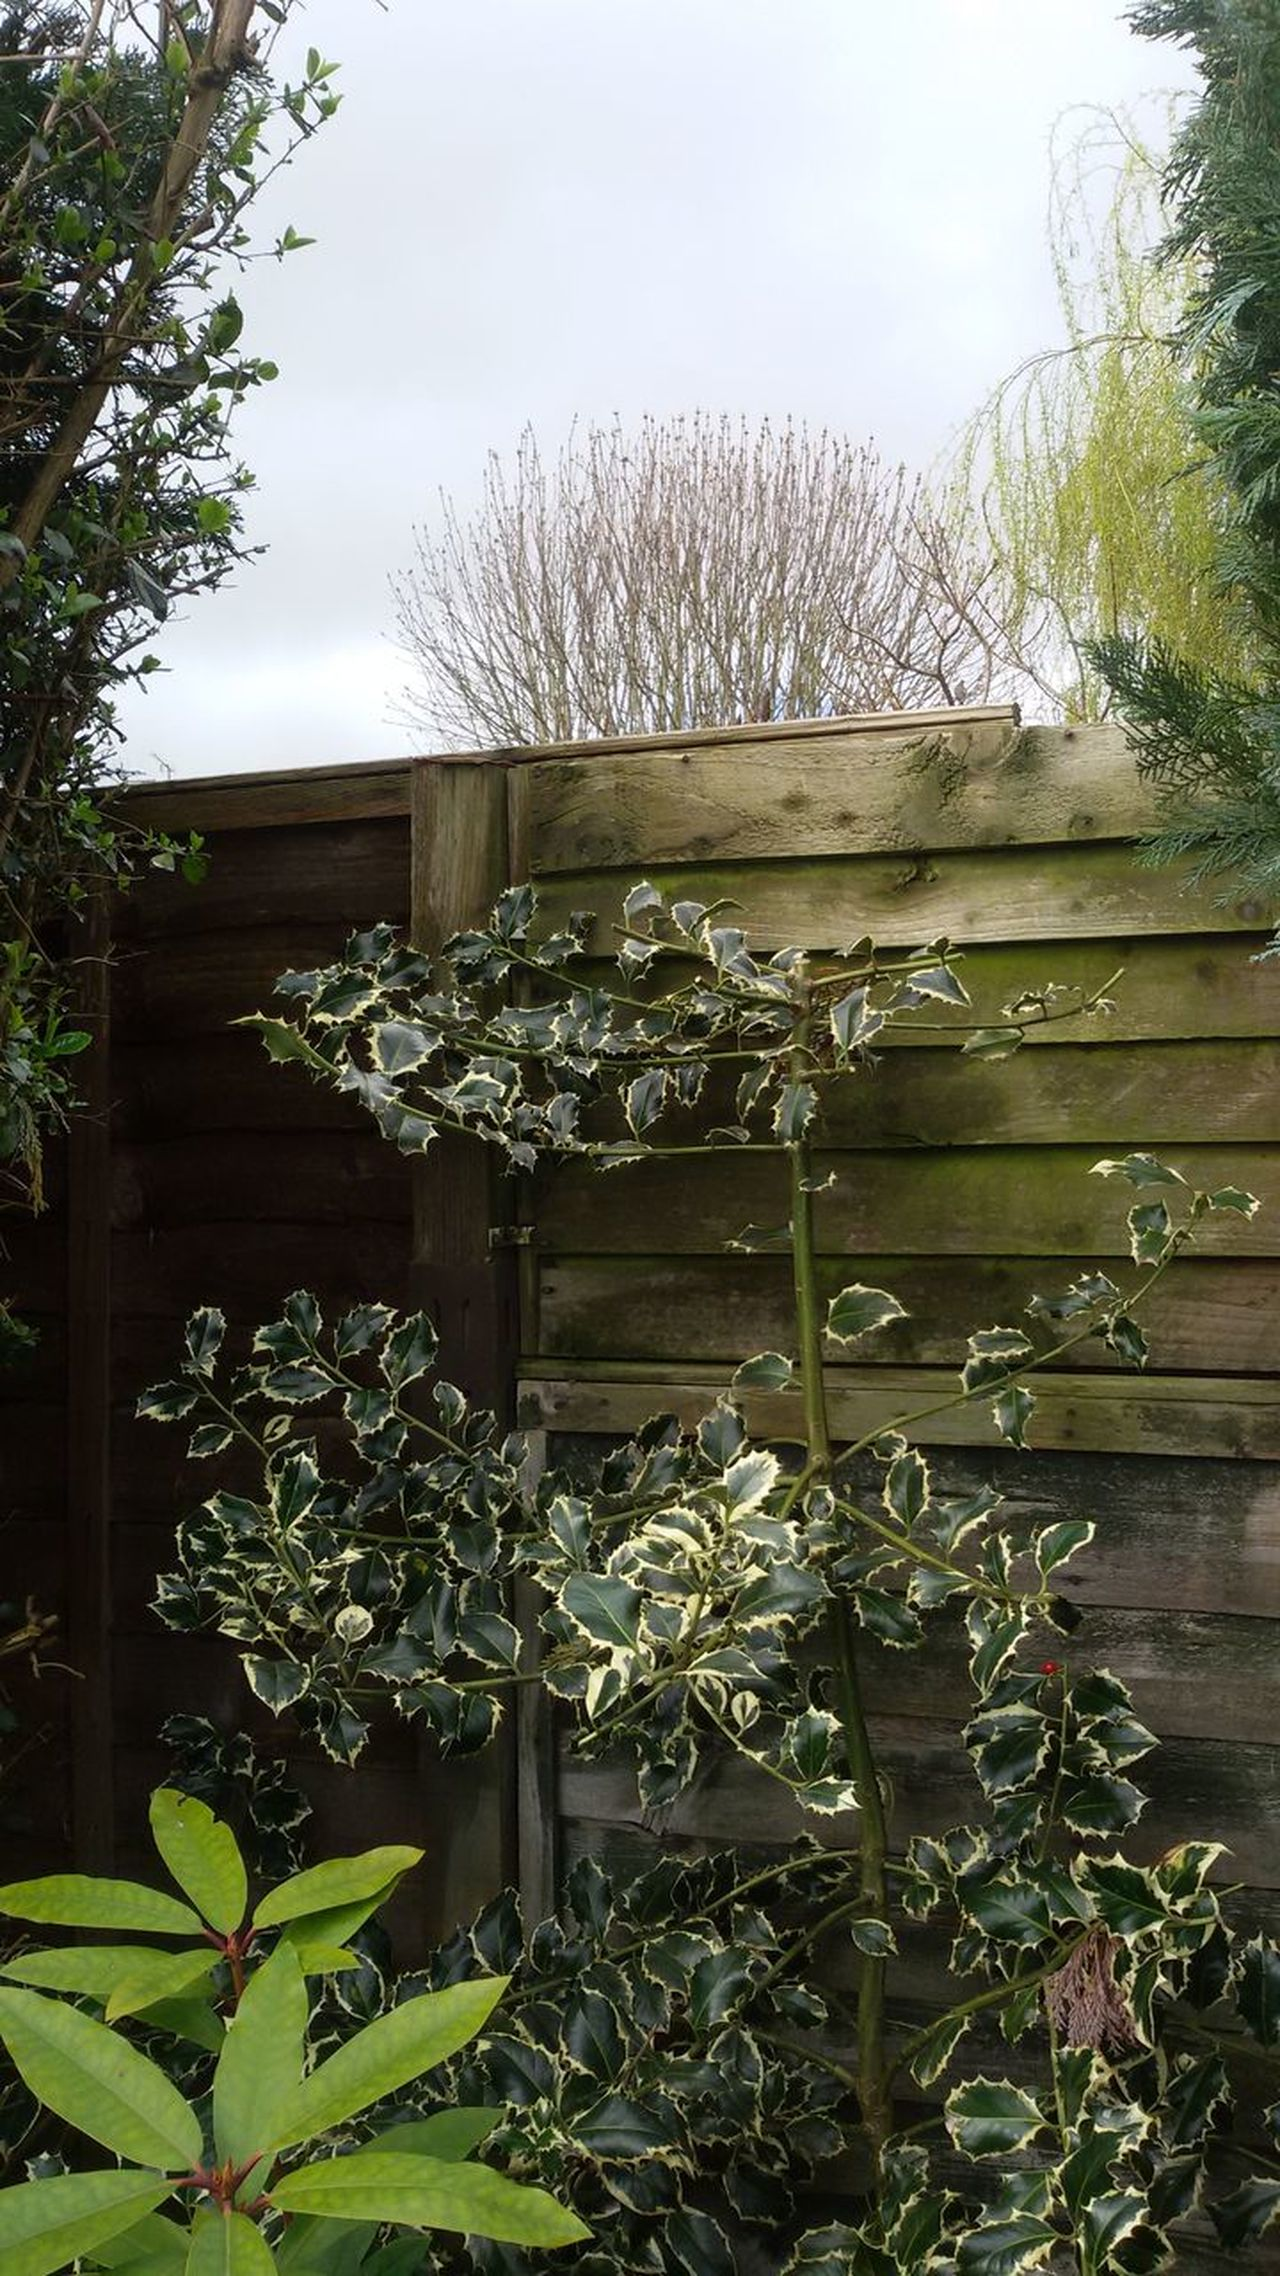 Garden plants. Plants Garden Green Fence Nature Leafs Leafscape Branches Bushes